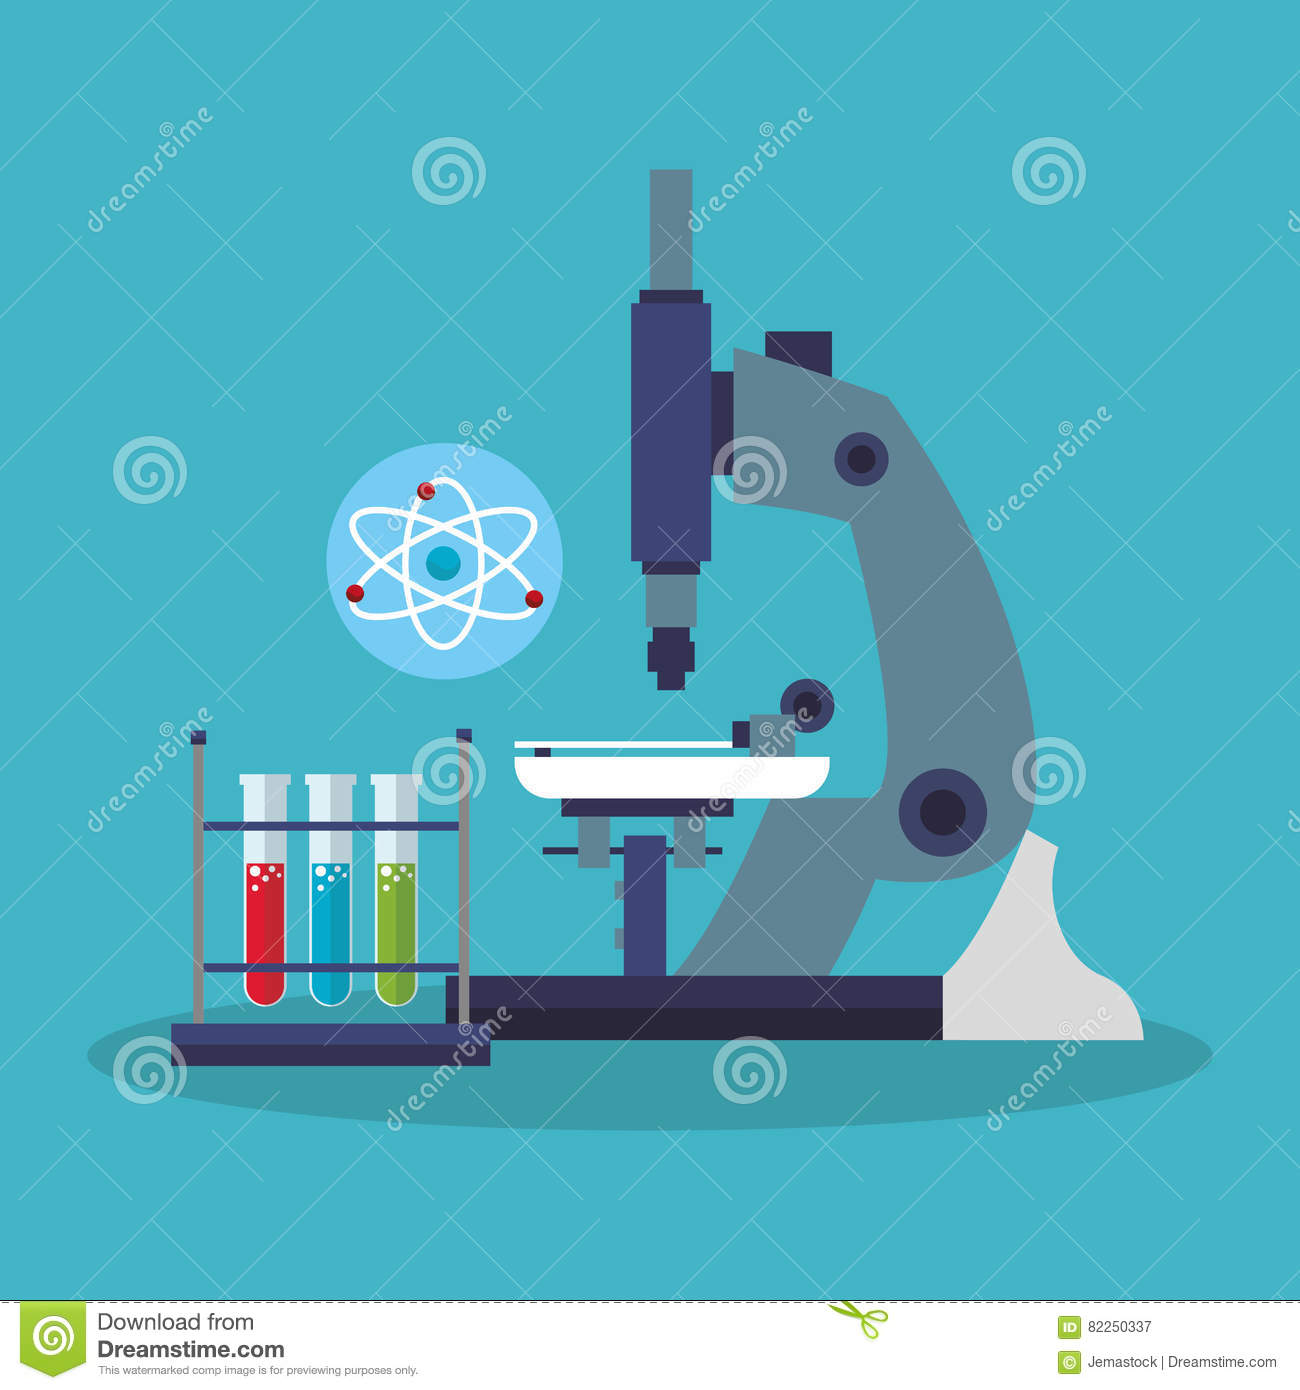 Colorful microscope and laboratory design stock vector download colorful microscope and laboratory design stock vector illustration of test vector 82250337 ccuart Images